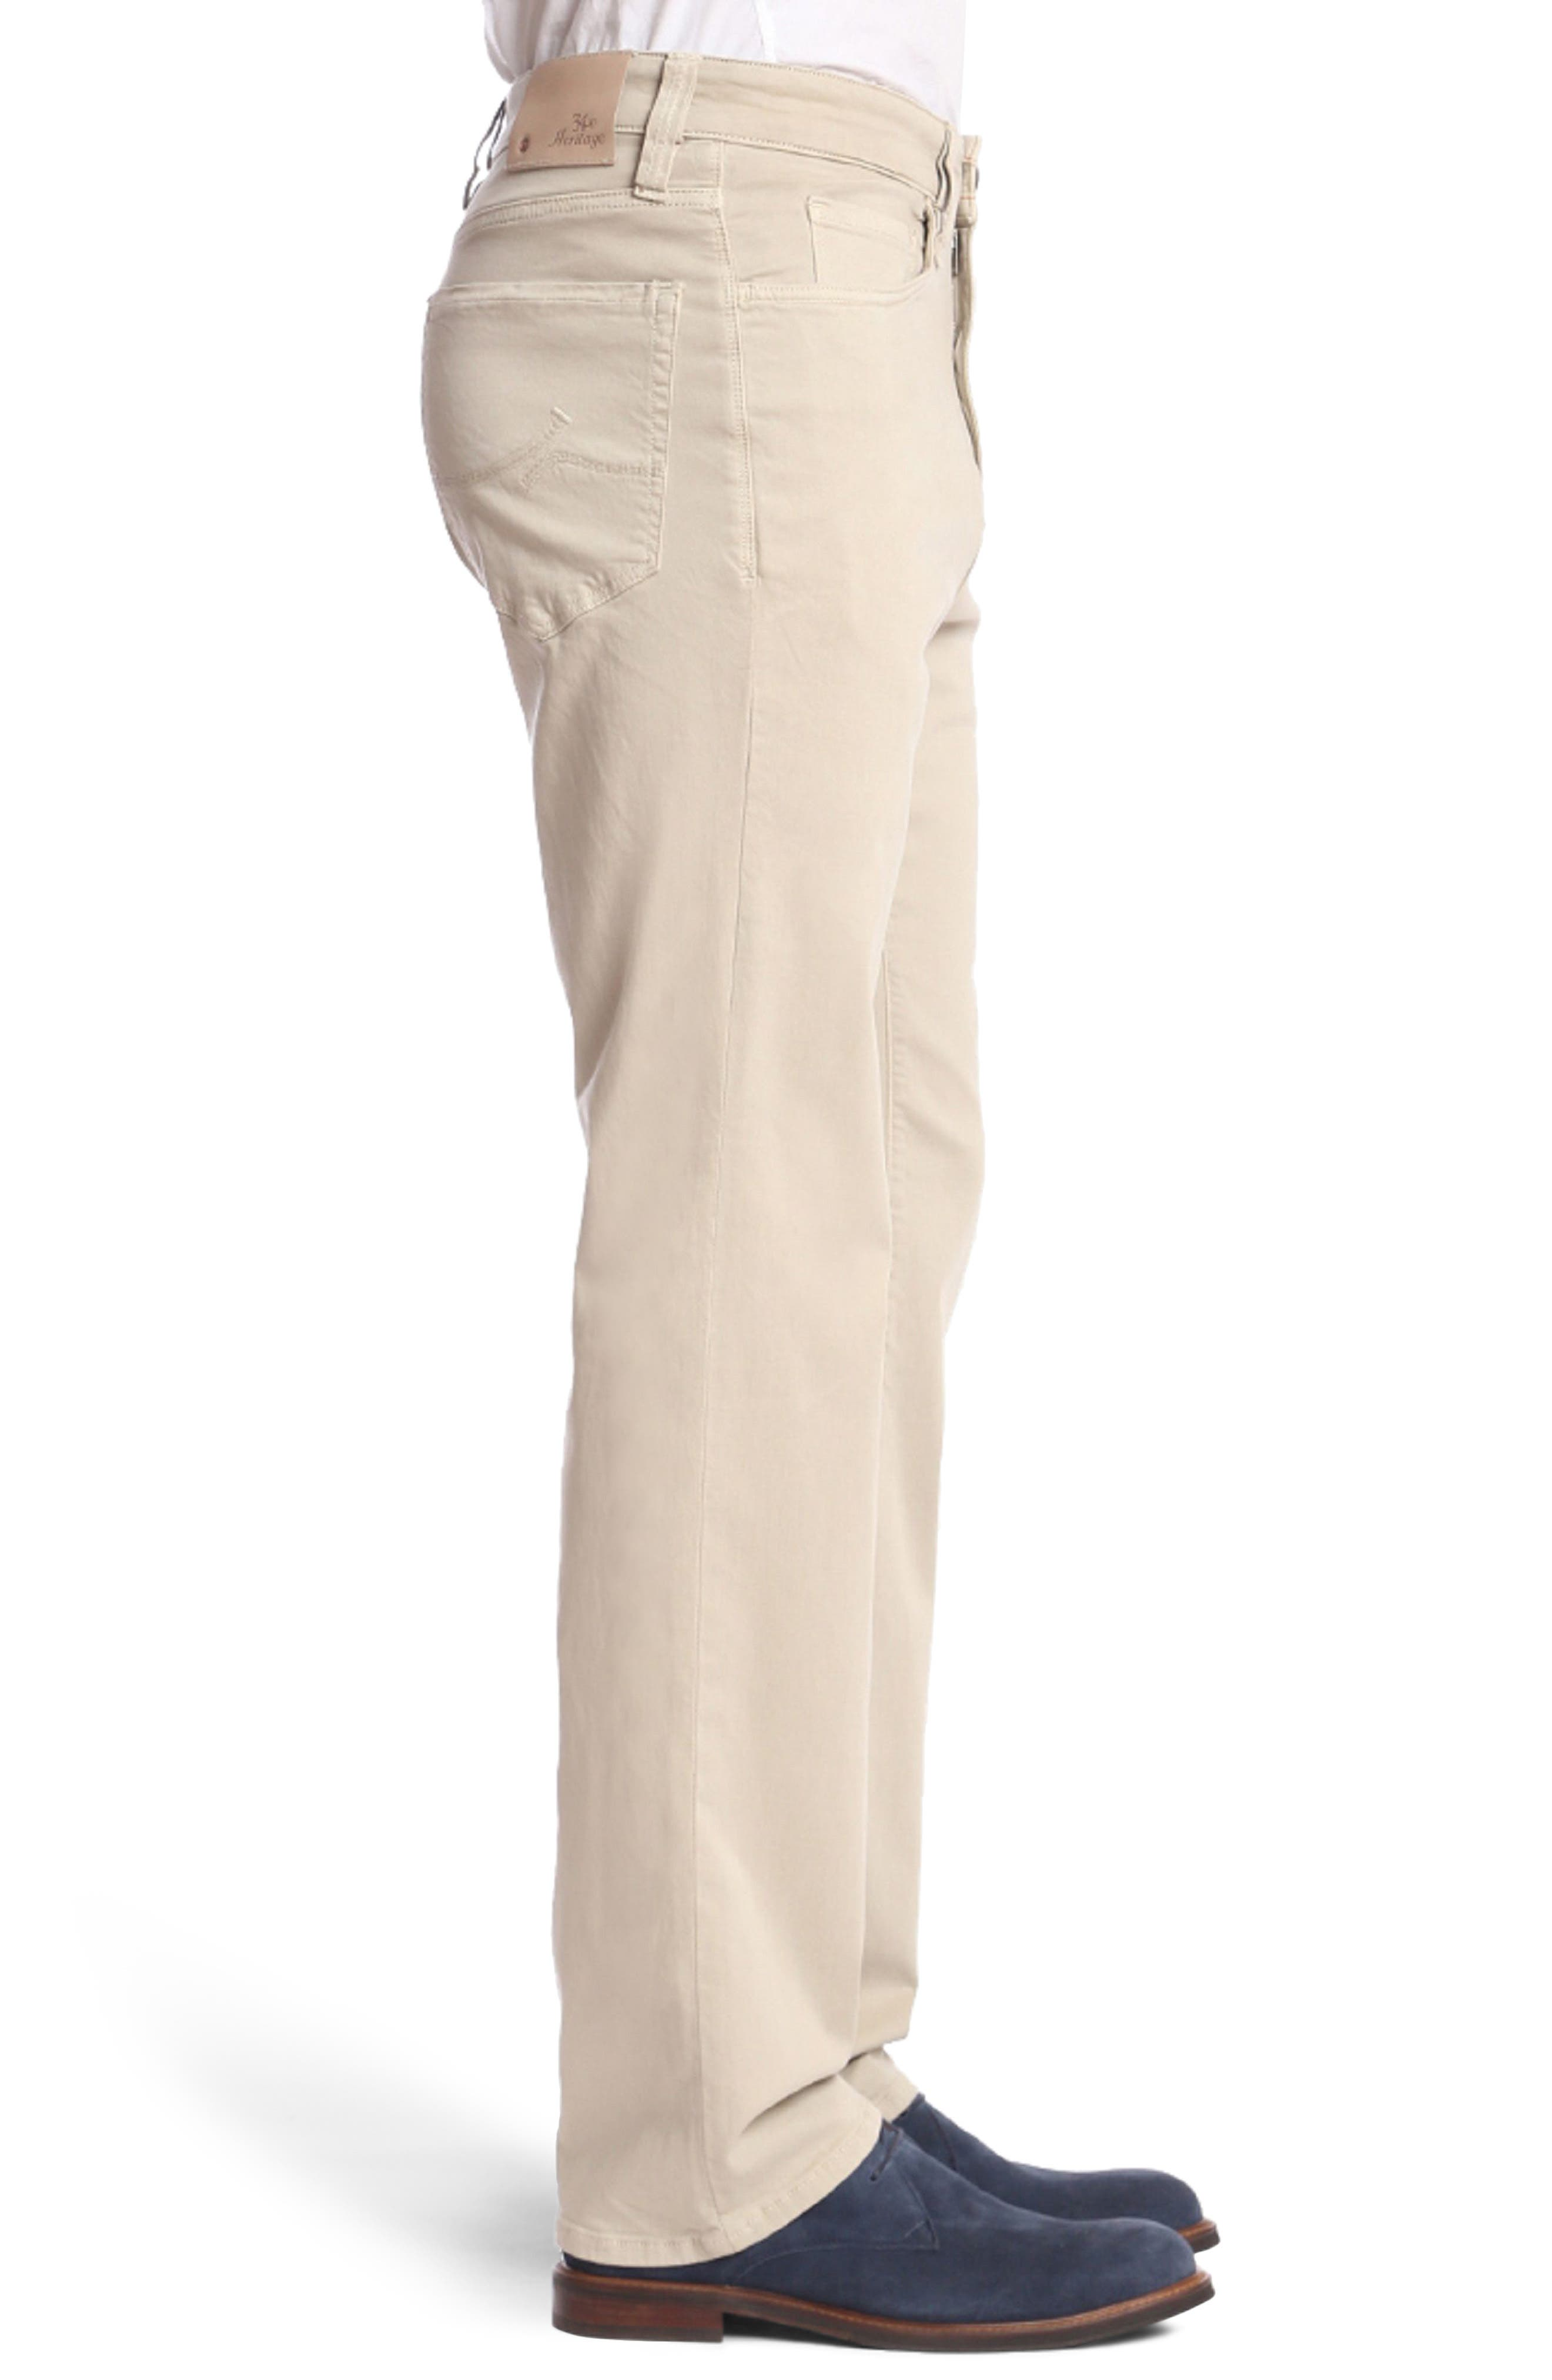 Charisma Relaxed Fit Jeans,                             Alternate thumbnail 3, color,                             Stone Twill